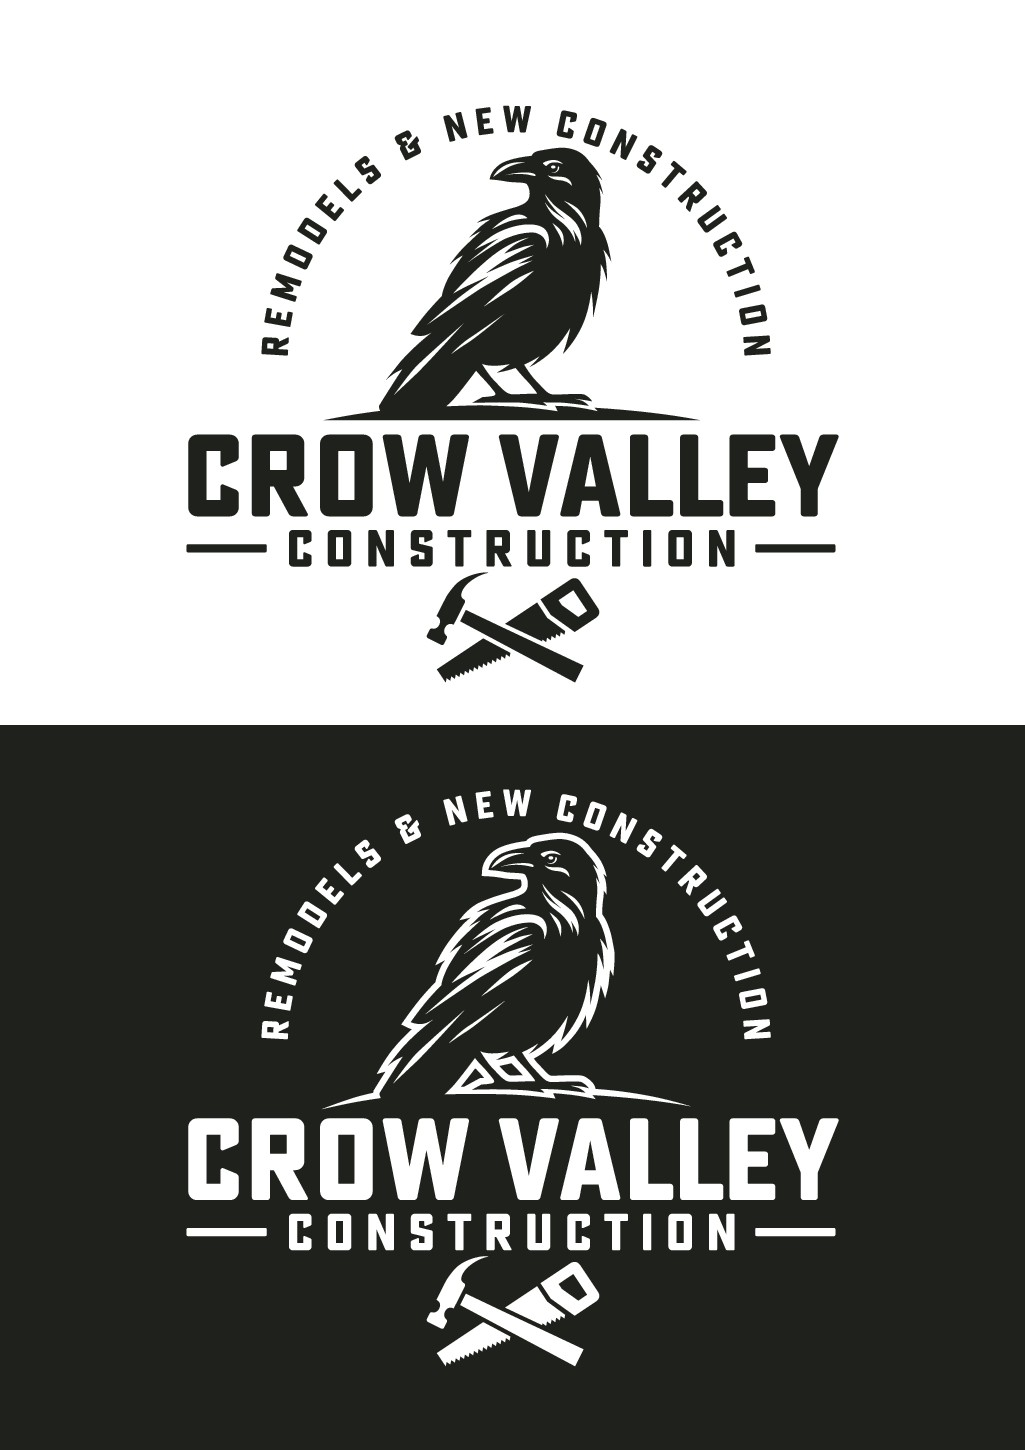 Clean and classic crow themed construction company logo